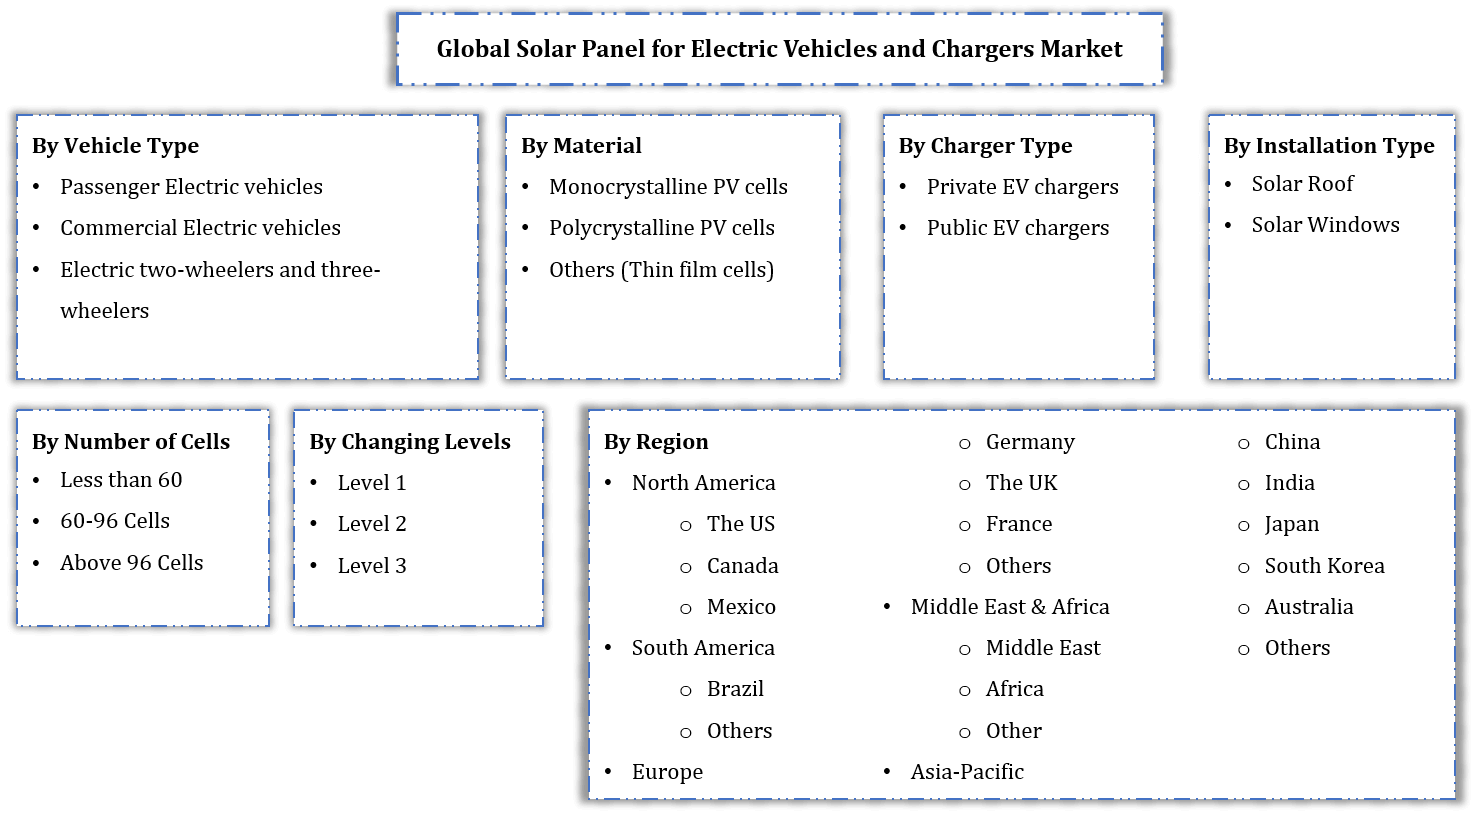 Global Solar Panel for Electric Vehicle and Chargers Market Segmentation